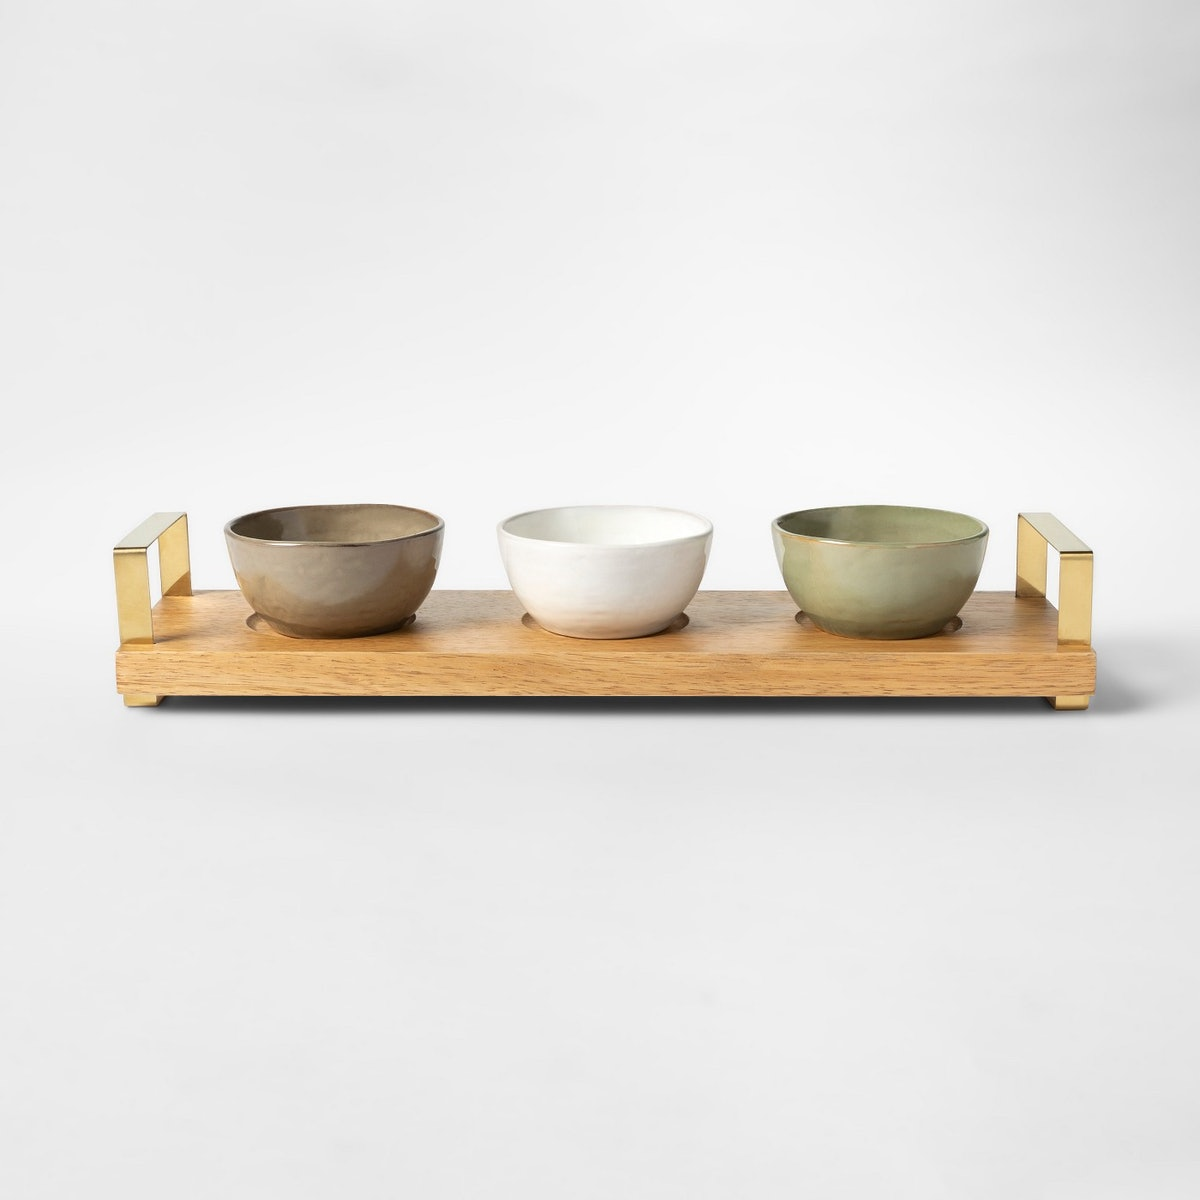 Cravings by Chrissy Teigen Tidbit Bowls with Wood Tray